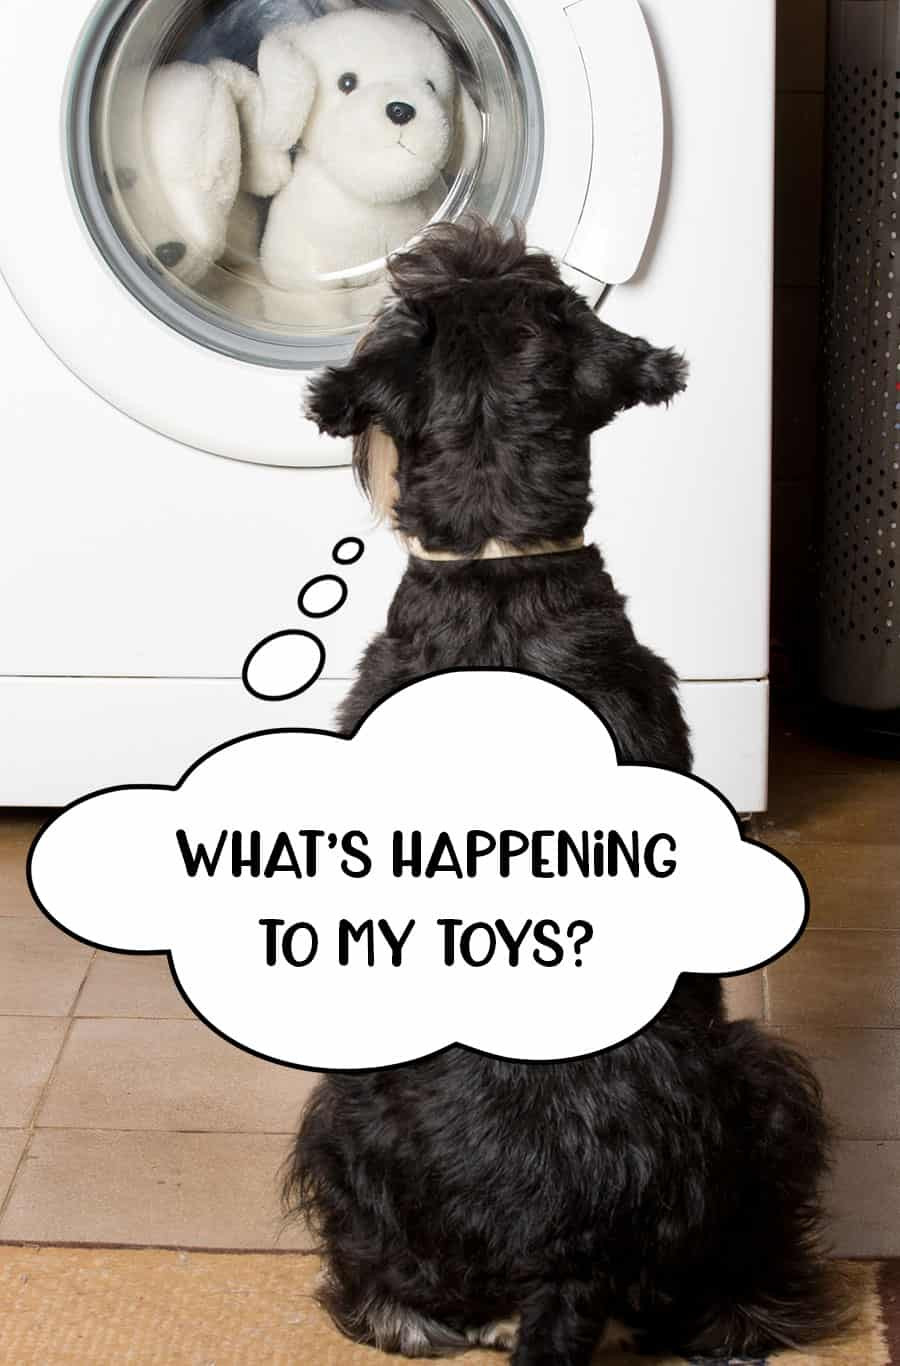 Dog sat watching his toys in the washing machine